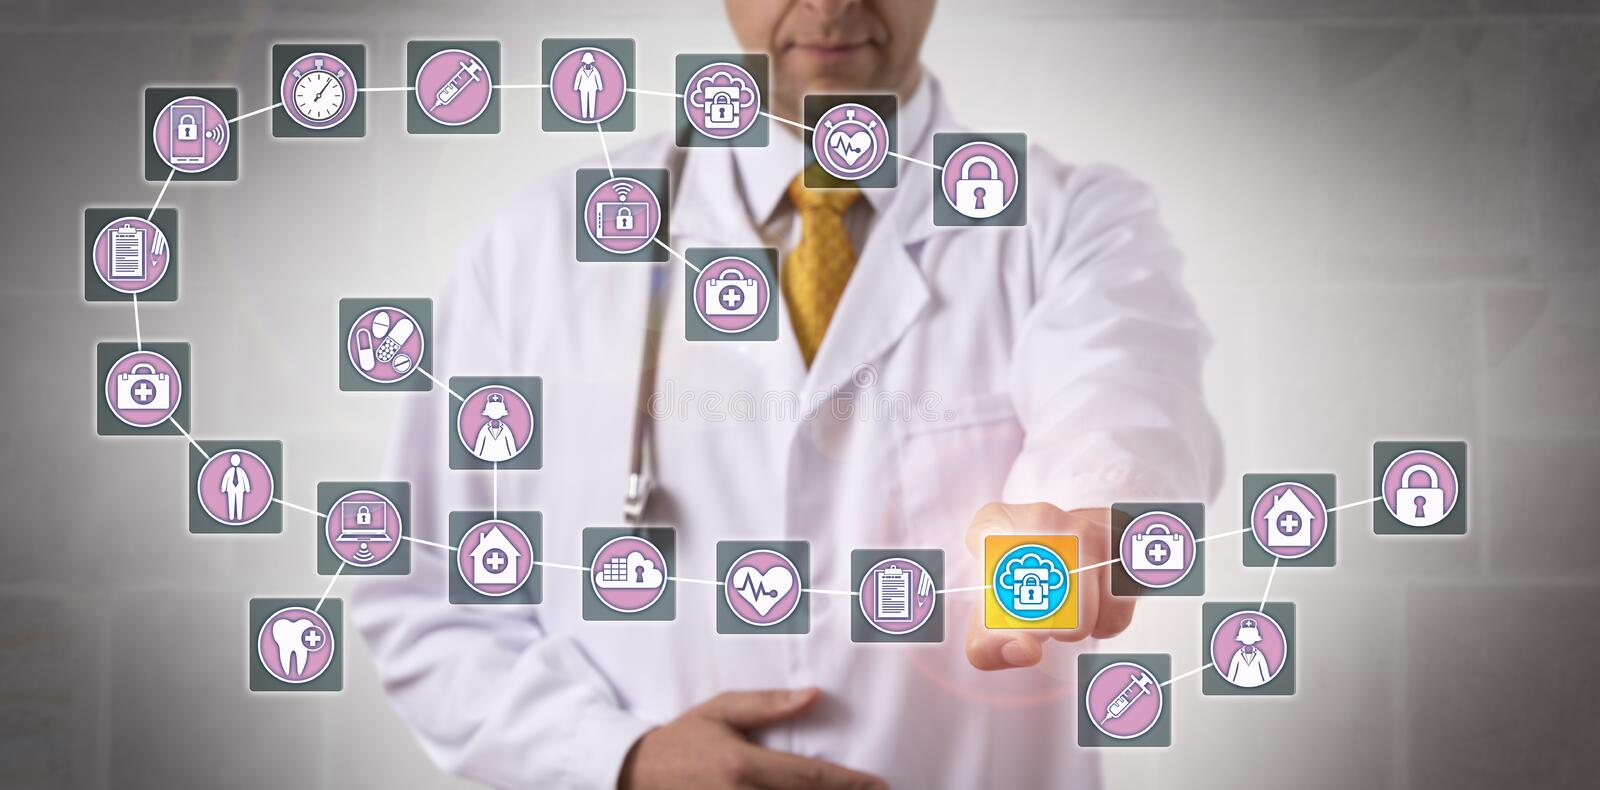 Doctor Touching Data Block In Medical Blockchain. Unrecognizable male physician is highlighting a data block record in a healthcare blockchain. Health care IT